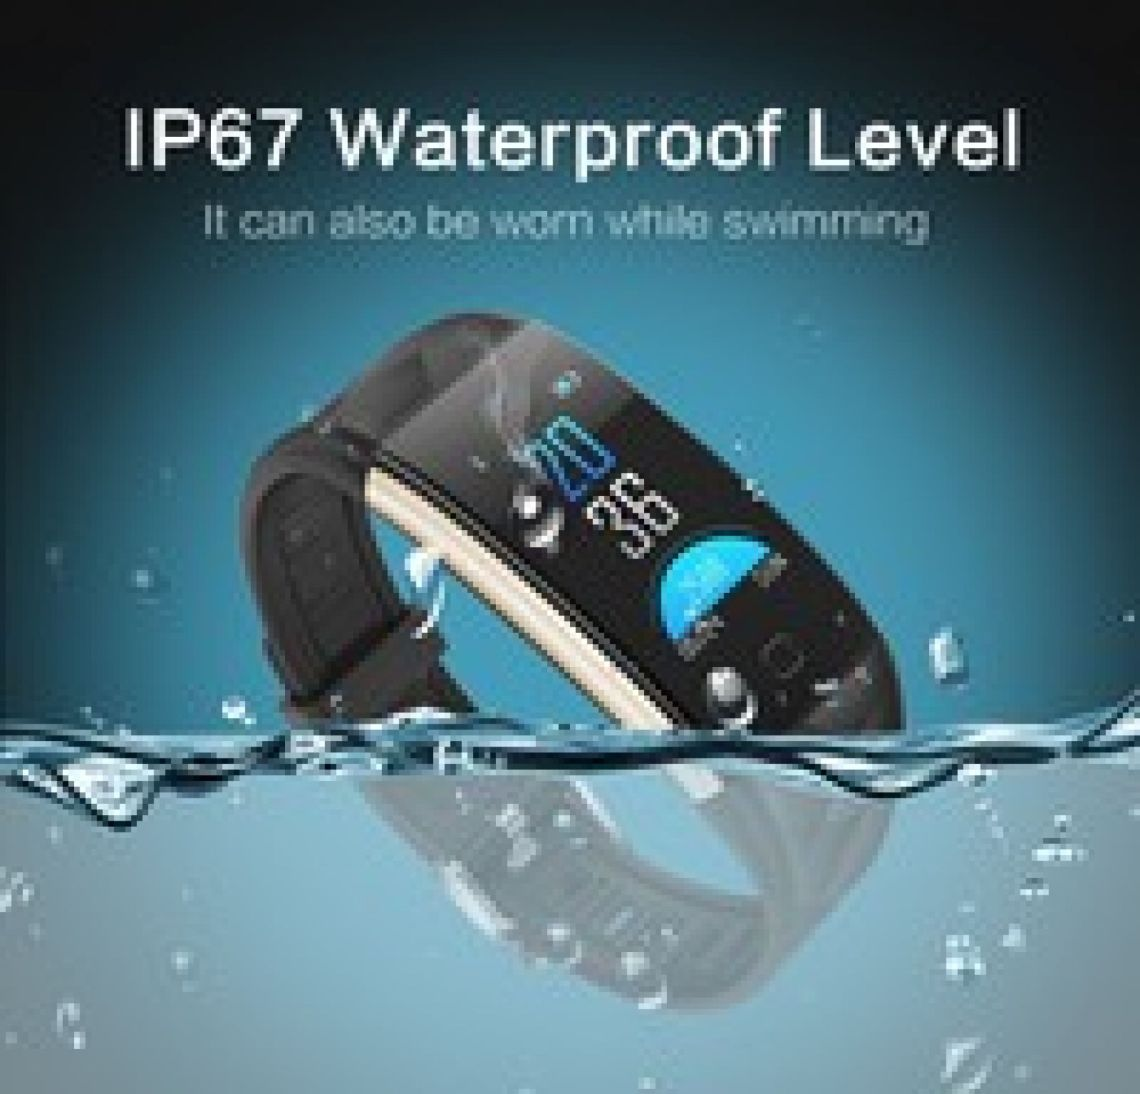 Wish | T20 Waterproof Colorful Screen Smart Watch Smart Sport Bracelet Fitness Tracker Heart Rate Blood Pressure Monitoring Sleeping Monitor Call Message Reminder Remote Camera